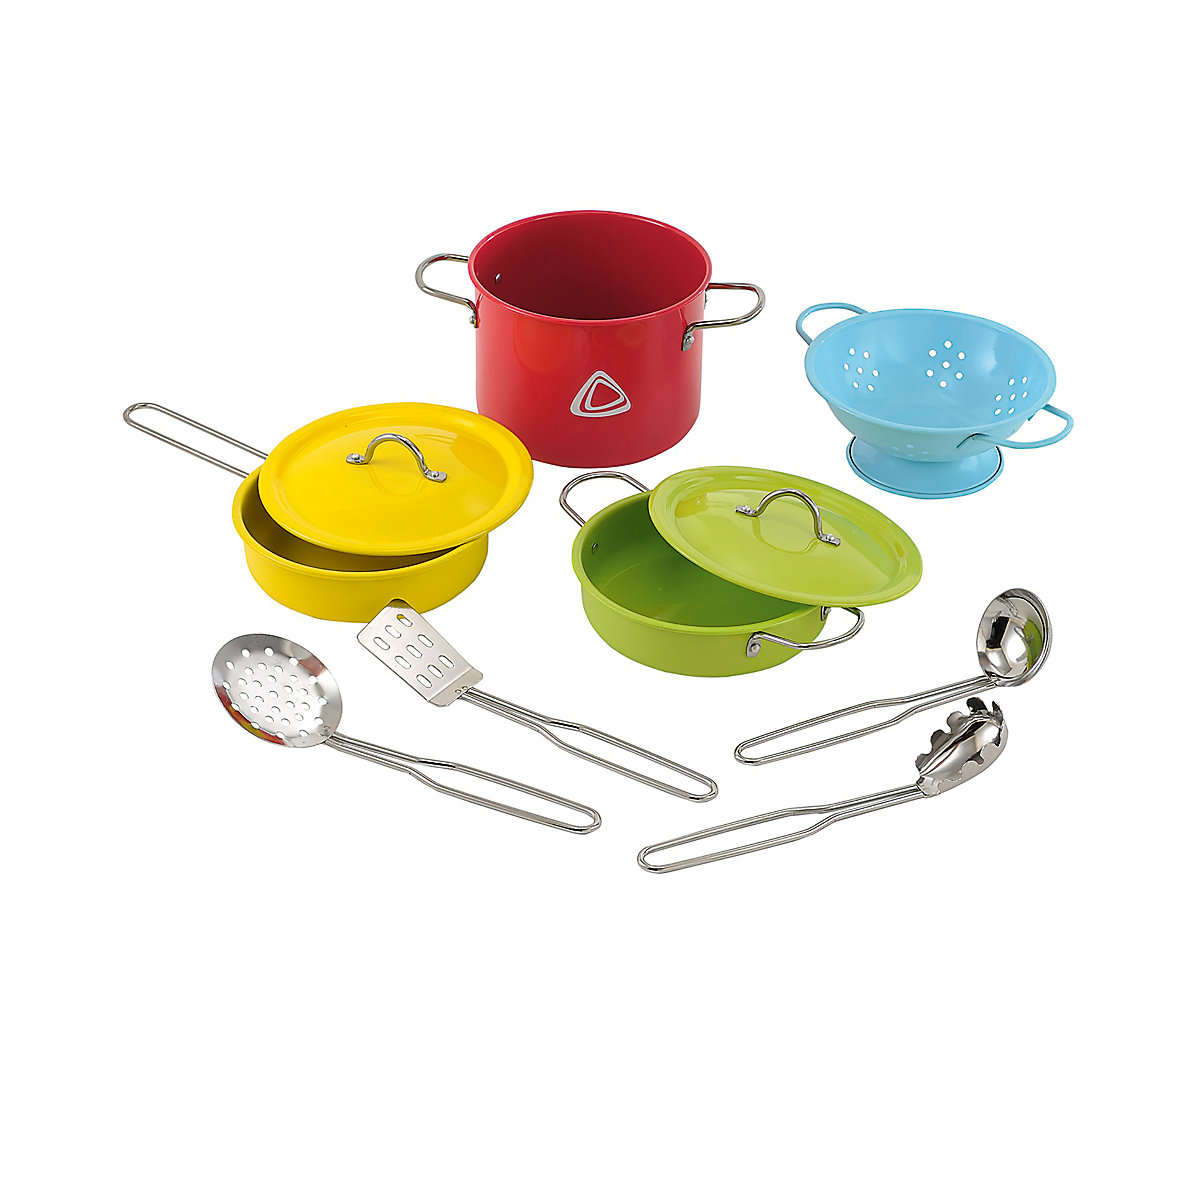 Metal Cookware Set Toy From 3 years